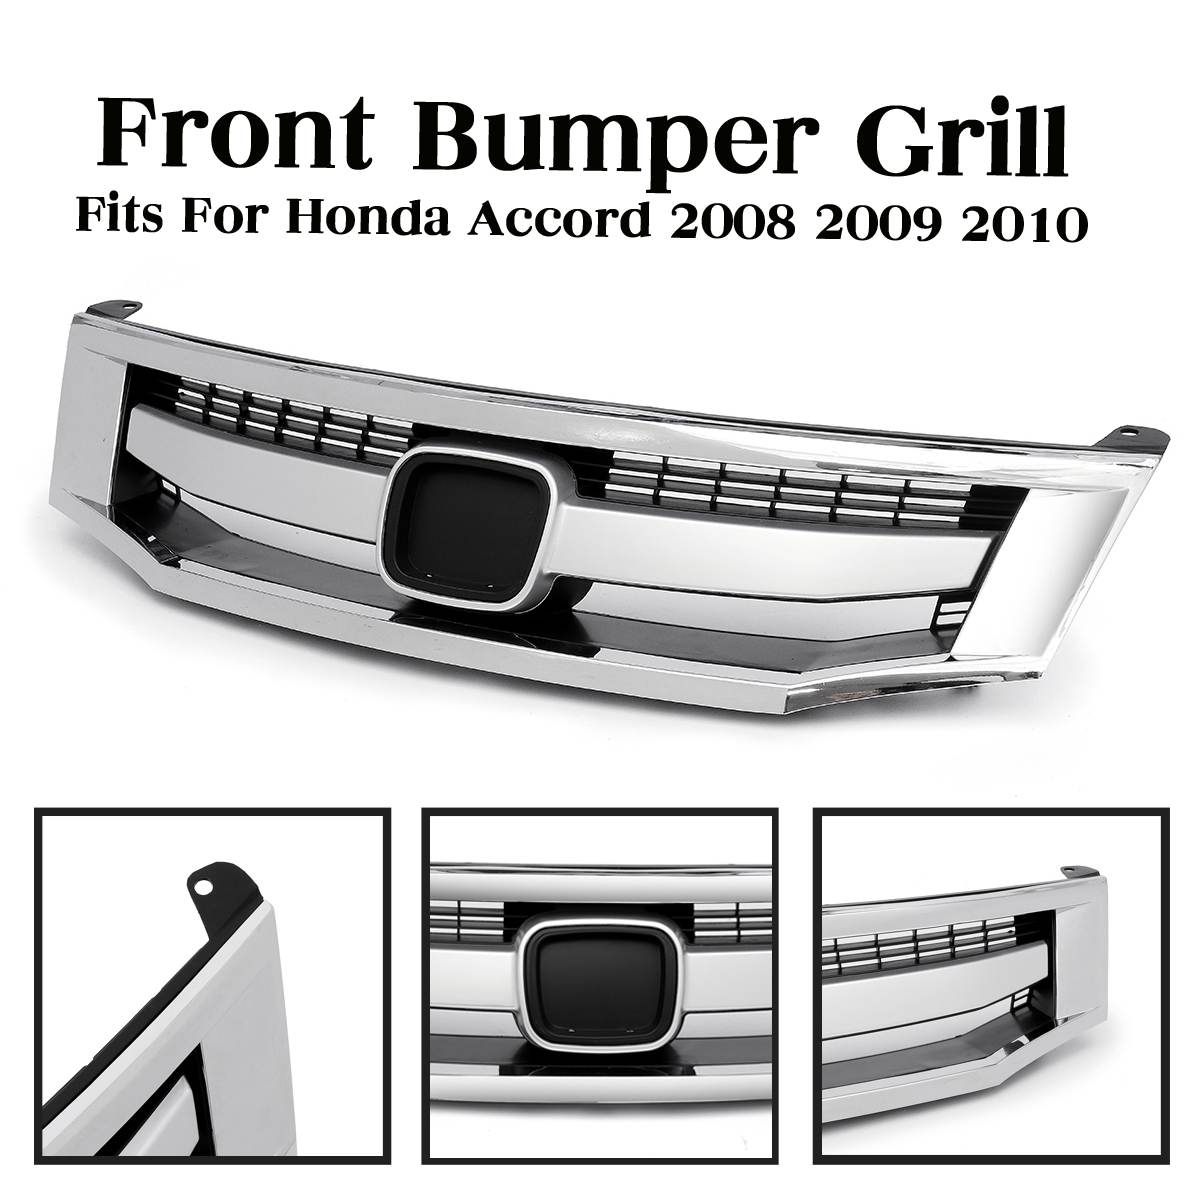 Car Front Bumper Sport Model Chrome Upper Grille <font><b>Grill</b></font> Car Styling <font><b>Grill</b></font> Replacement Parts For <font><b>Honda</b></font> for <font><b>Accord</b></font> <font><b>2008</b></font> 2009 2010 image